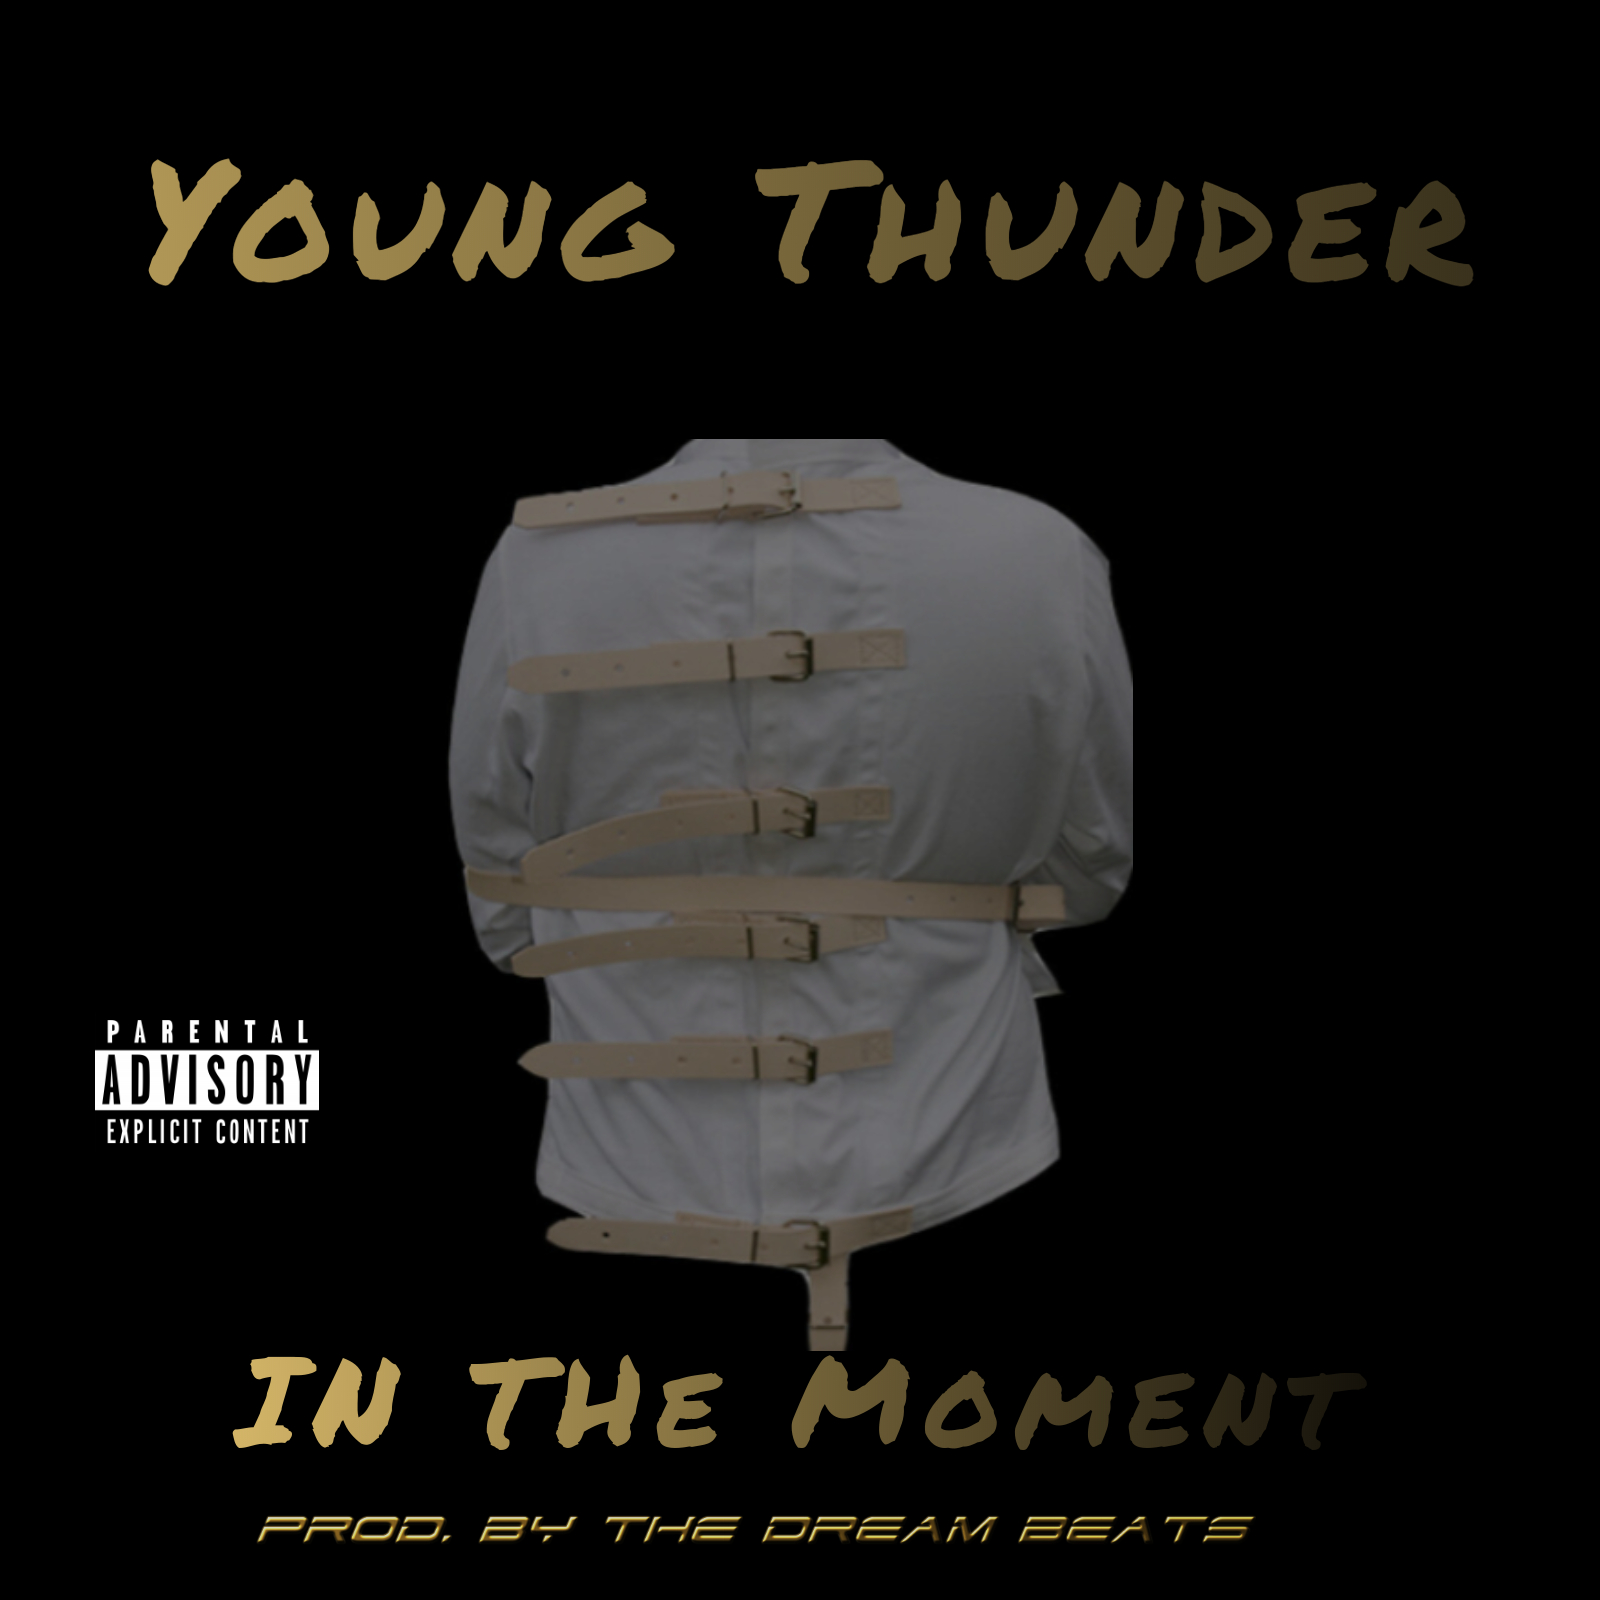 Young Thunder - In The Moment Produced by the Dream Beats